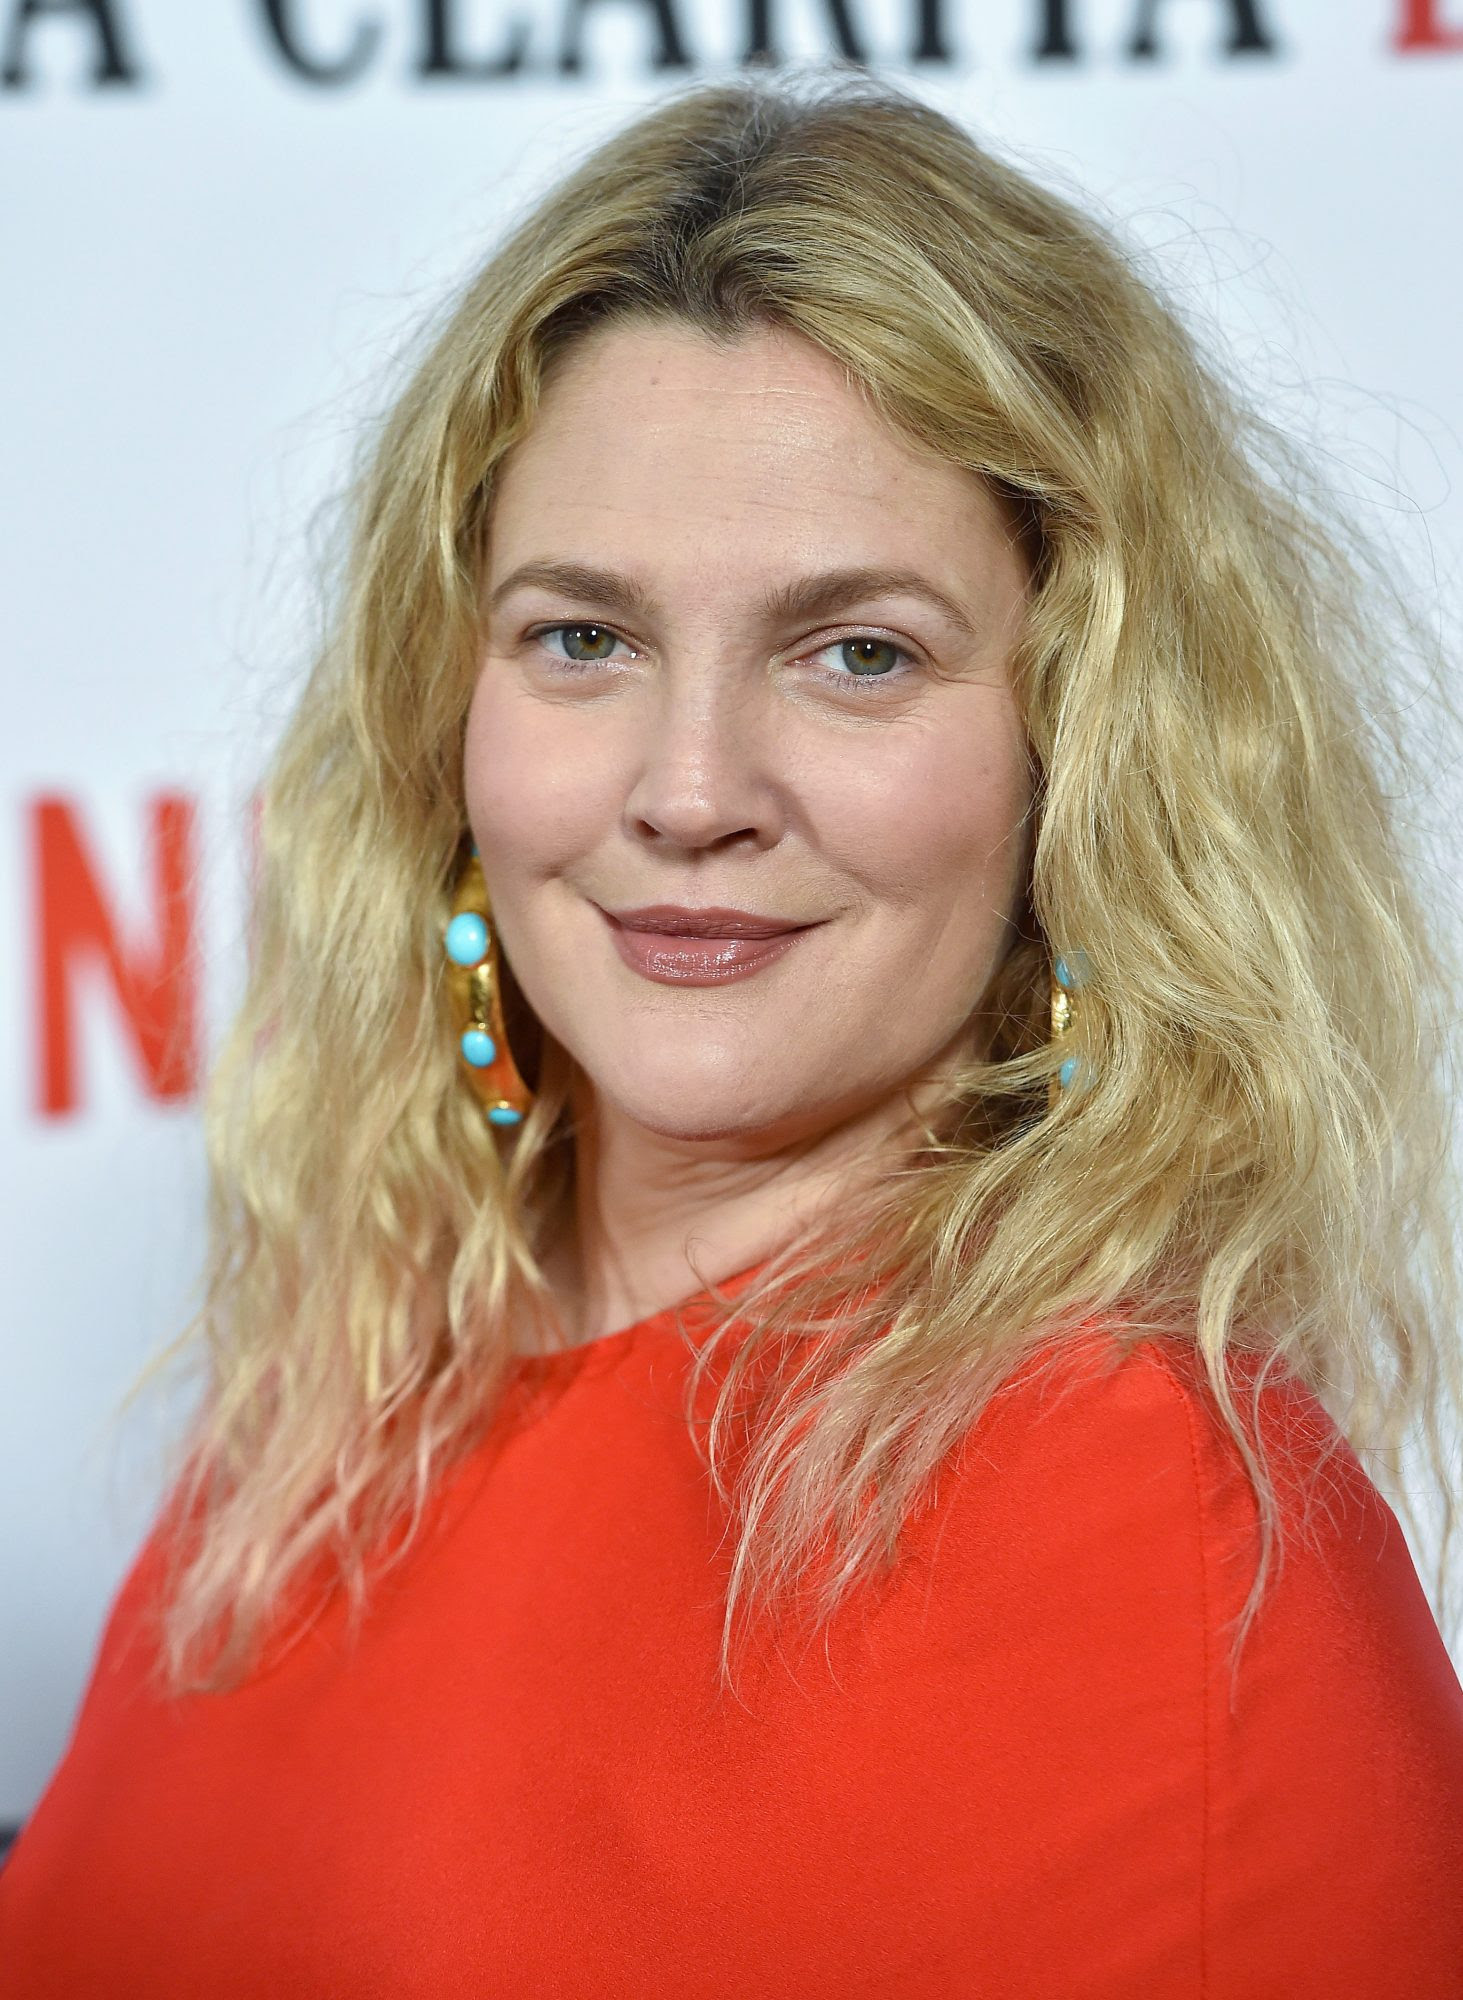 Image result for Drew Barrymore Swears By This 'Amazing' Lightweight Sunscreen That Doesn't Cause Breakouts